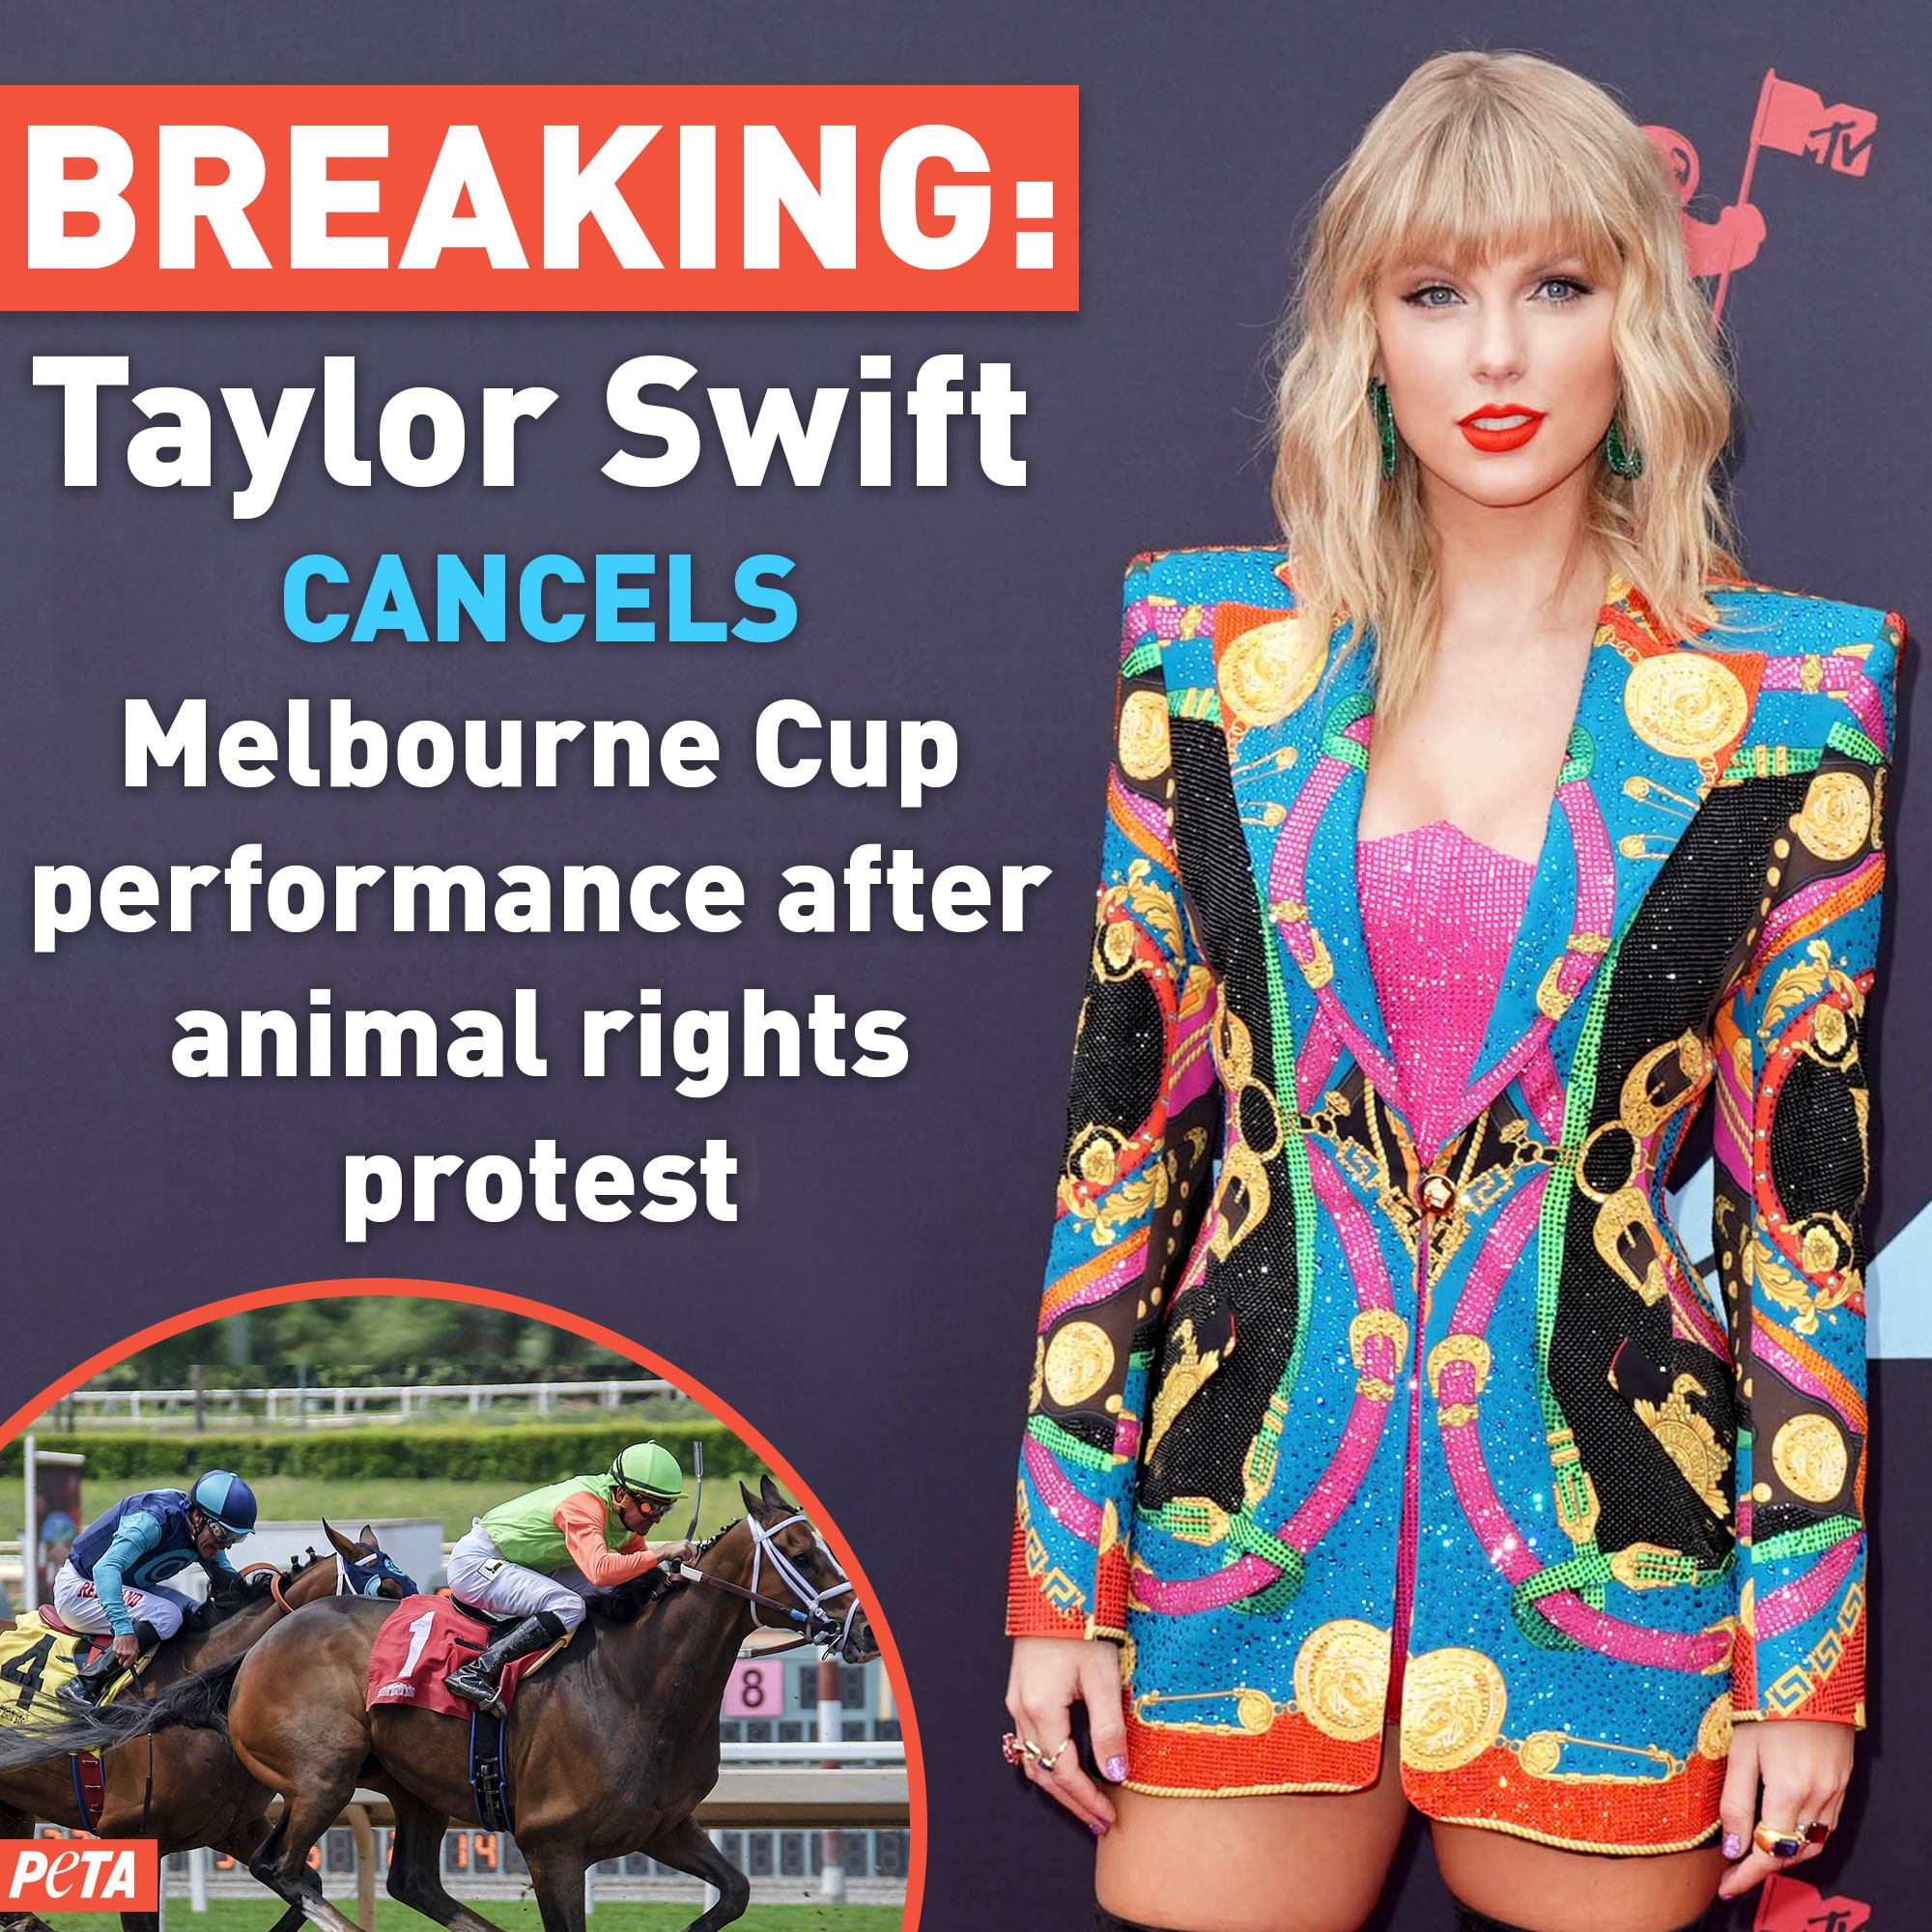 A photo of Taylor Swift, who cancelled her performance at the Melbourne Cup.